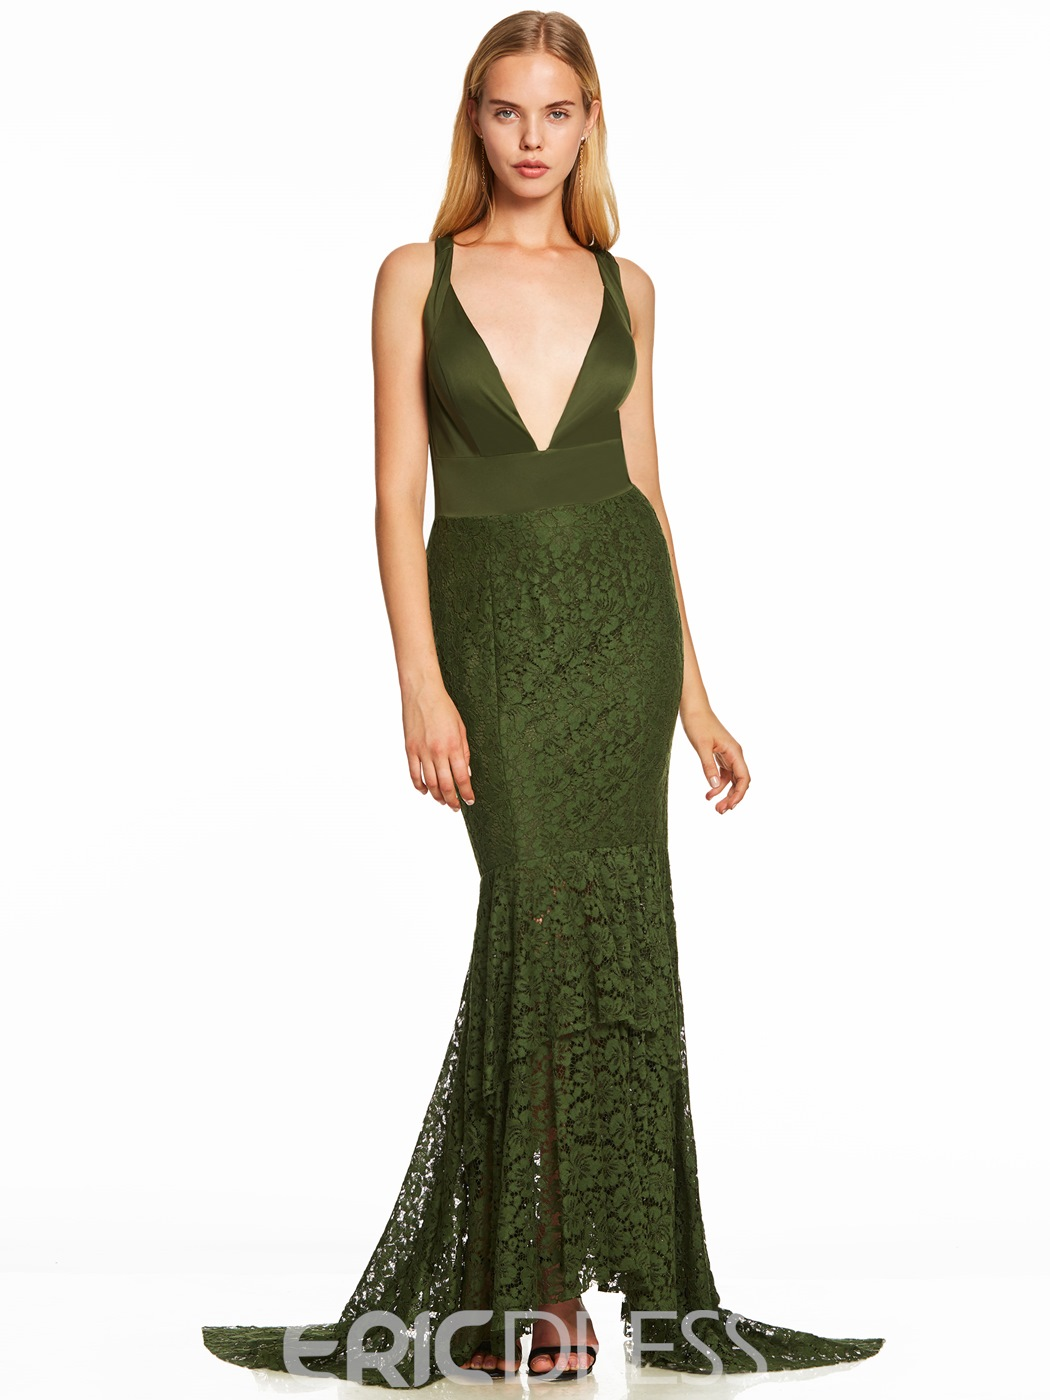 Ericdress V Neck Criss-Cross Straps Lace Mermaid Evening Dress